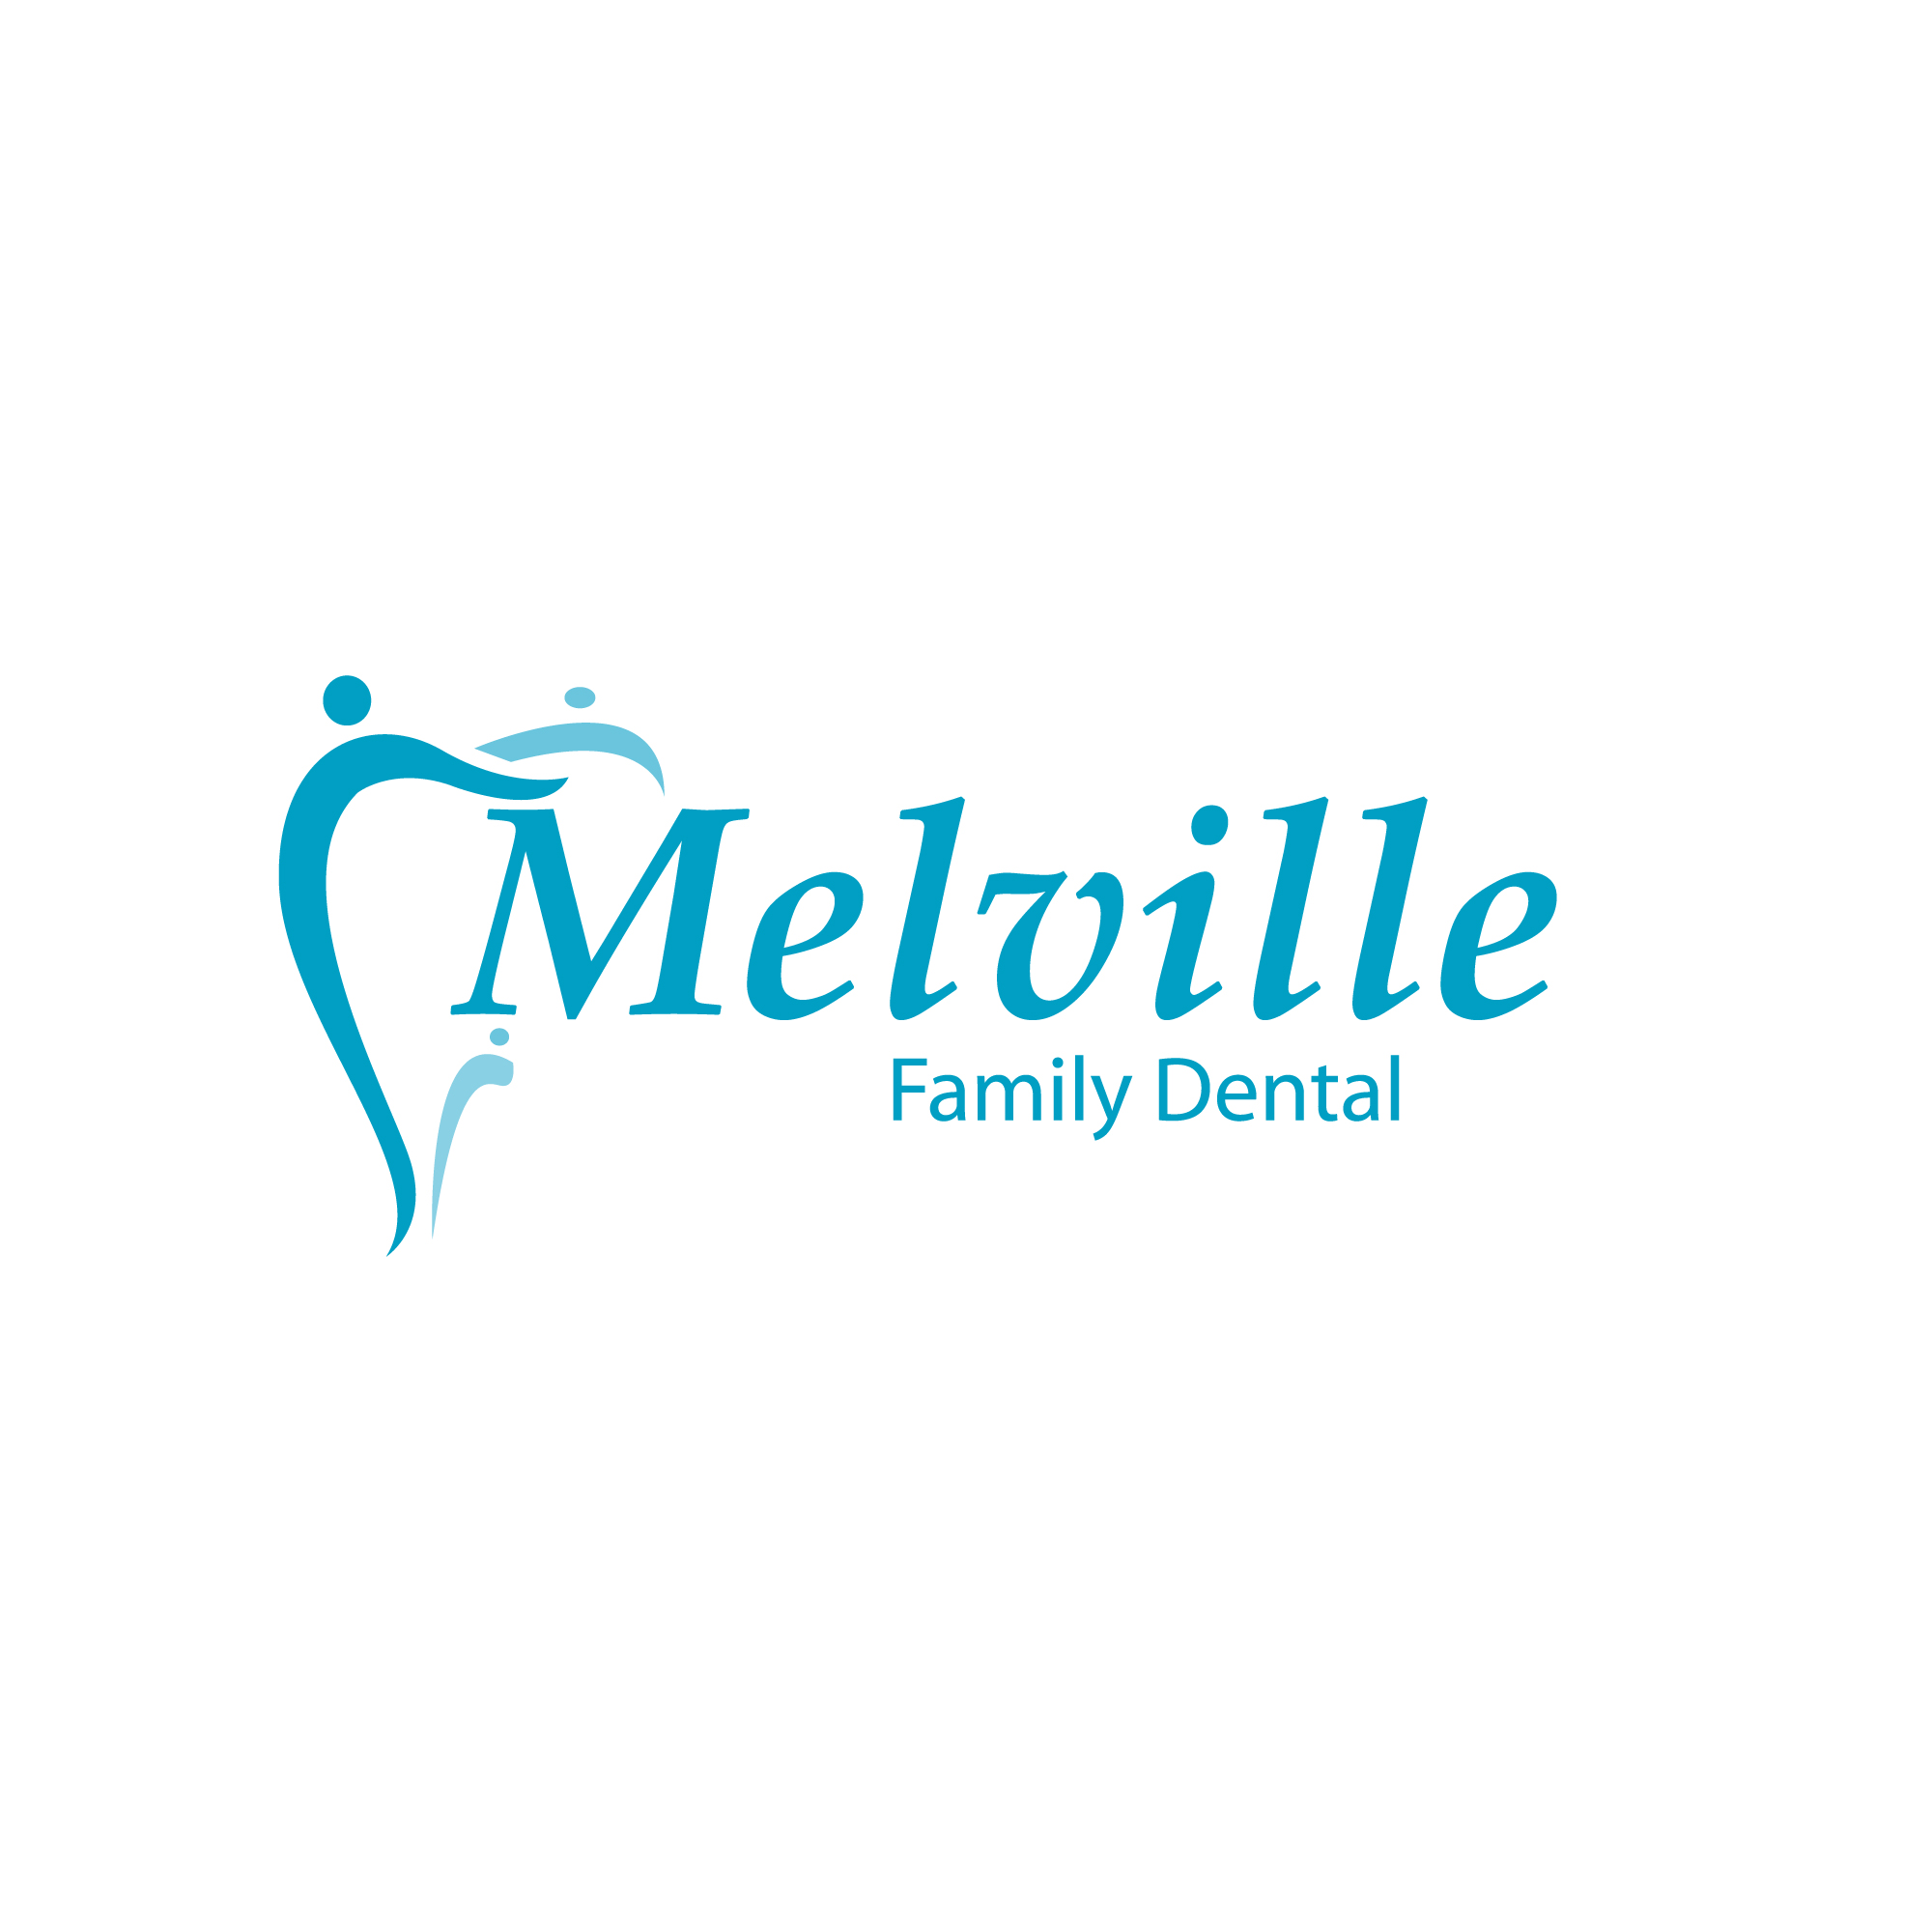 Melville Family Dental Logo